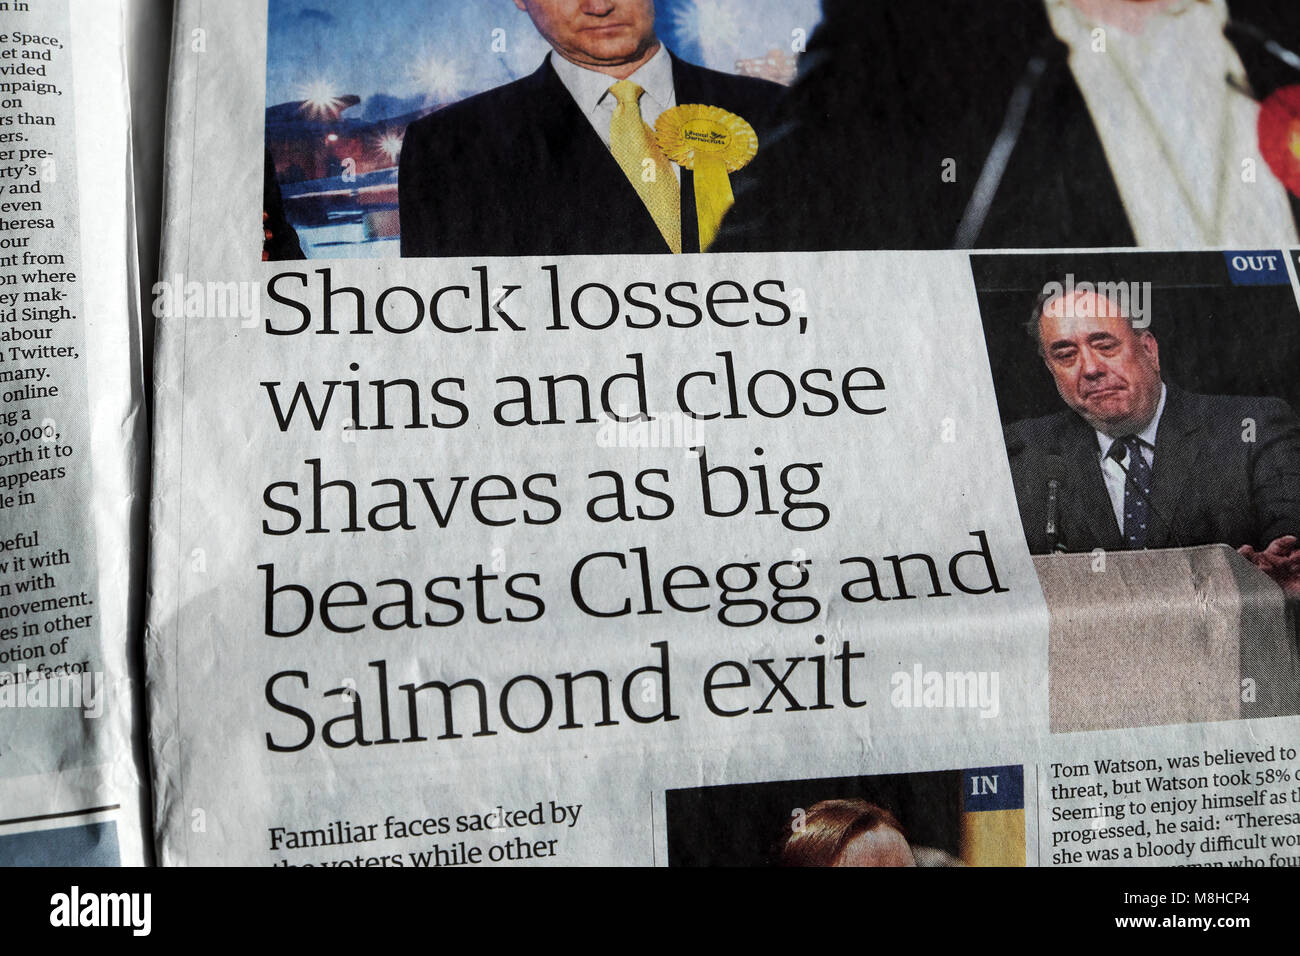 'Shock losses, wins and close shaves as big beasts Clegg and Salmond exit' article in the Guardian newspaper - Stock Image